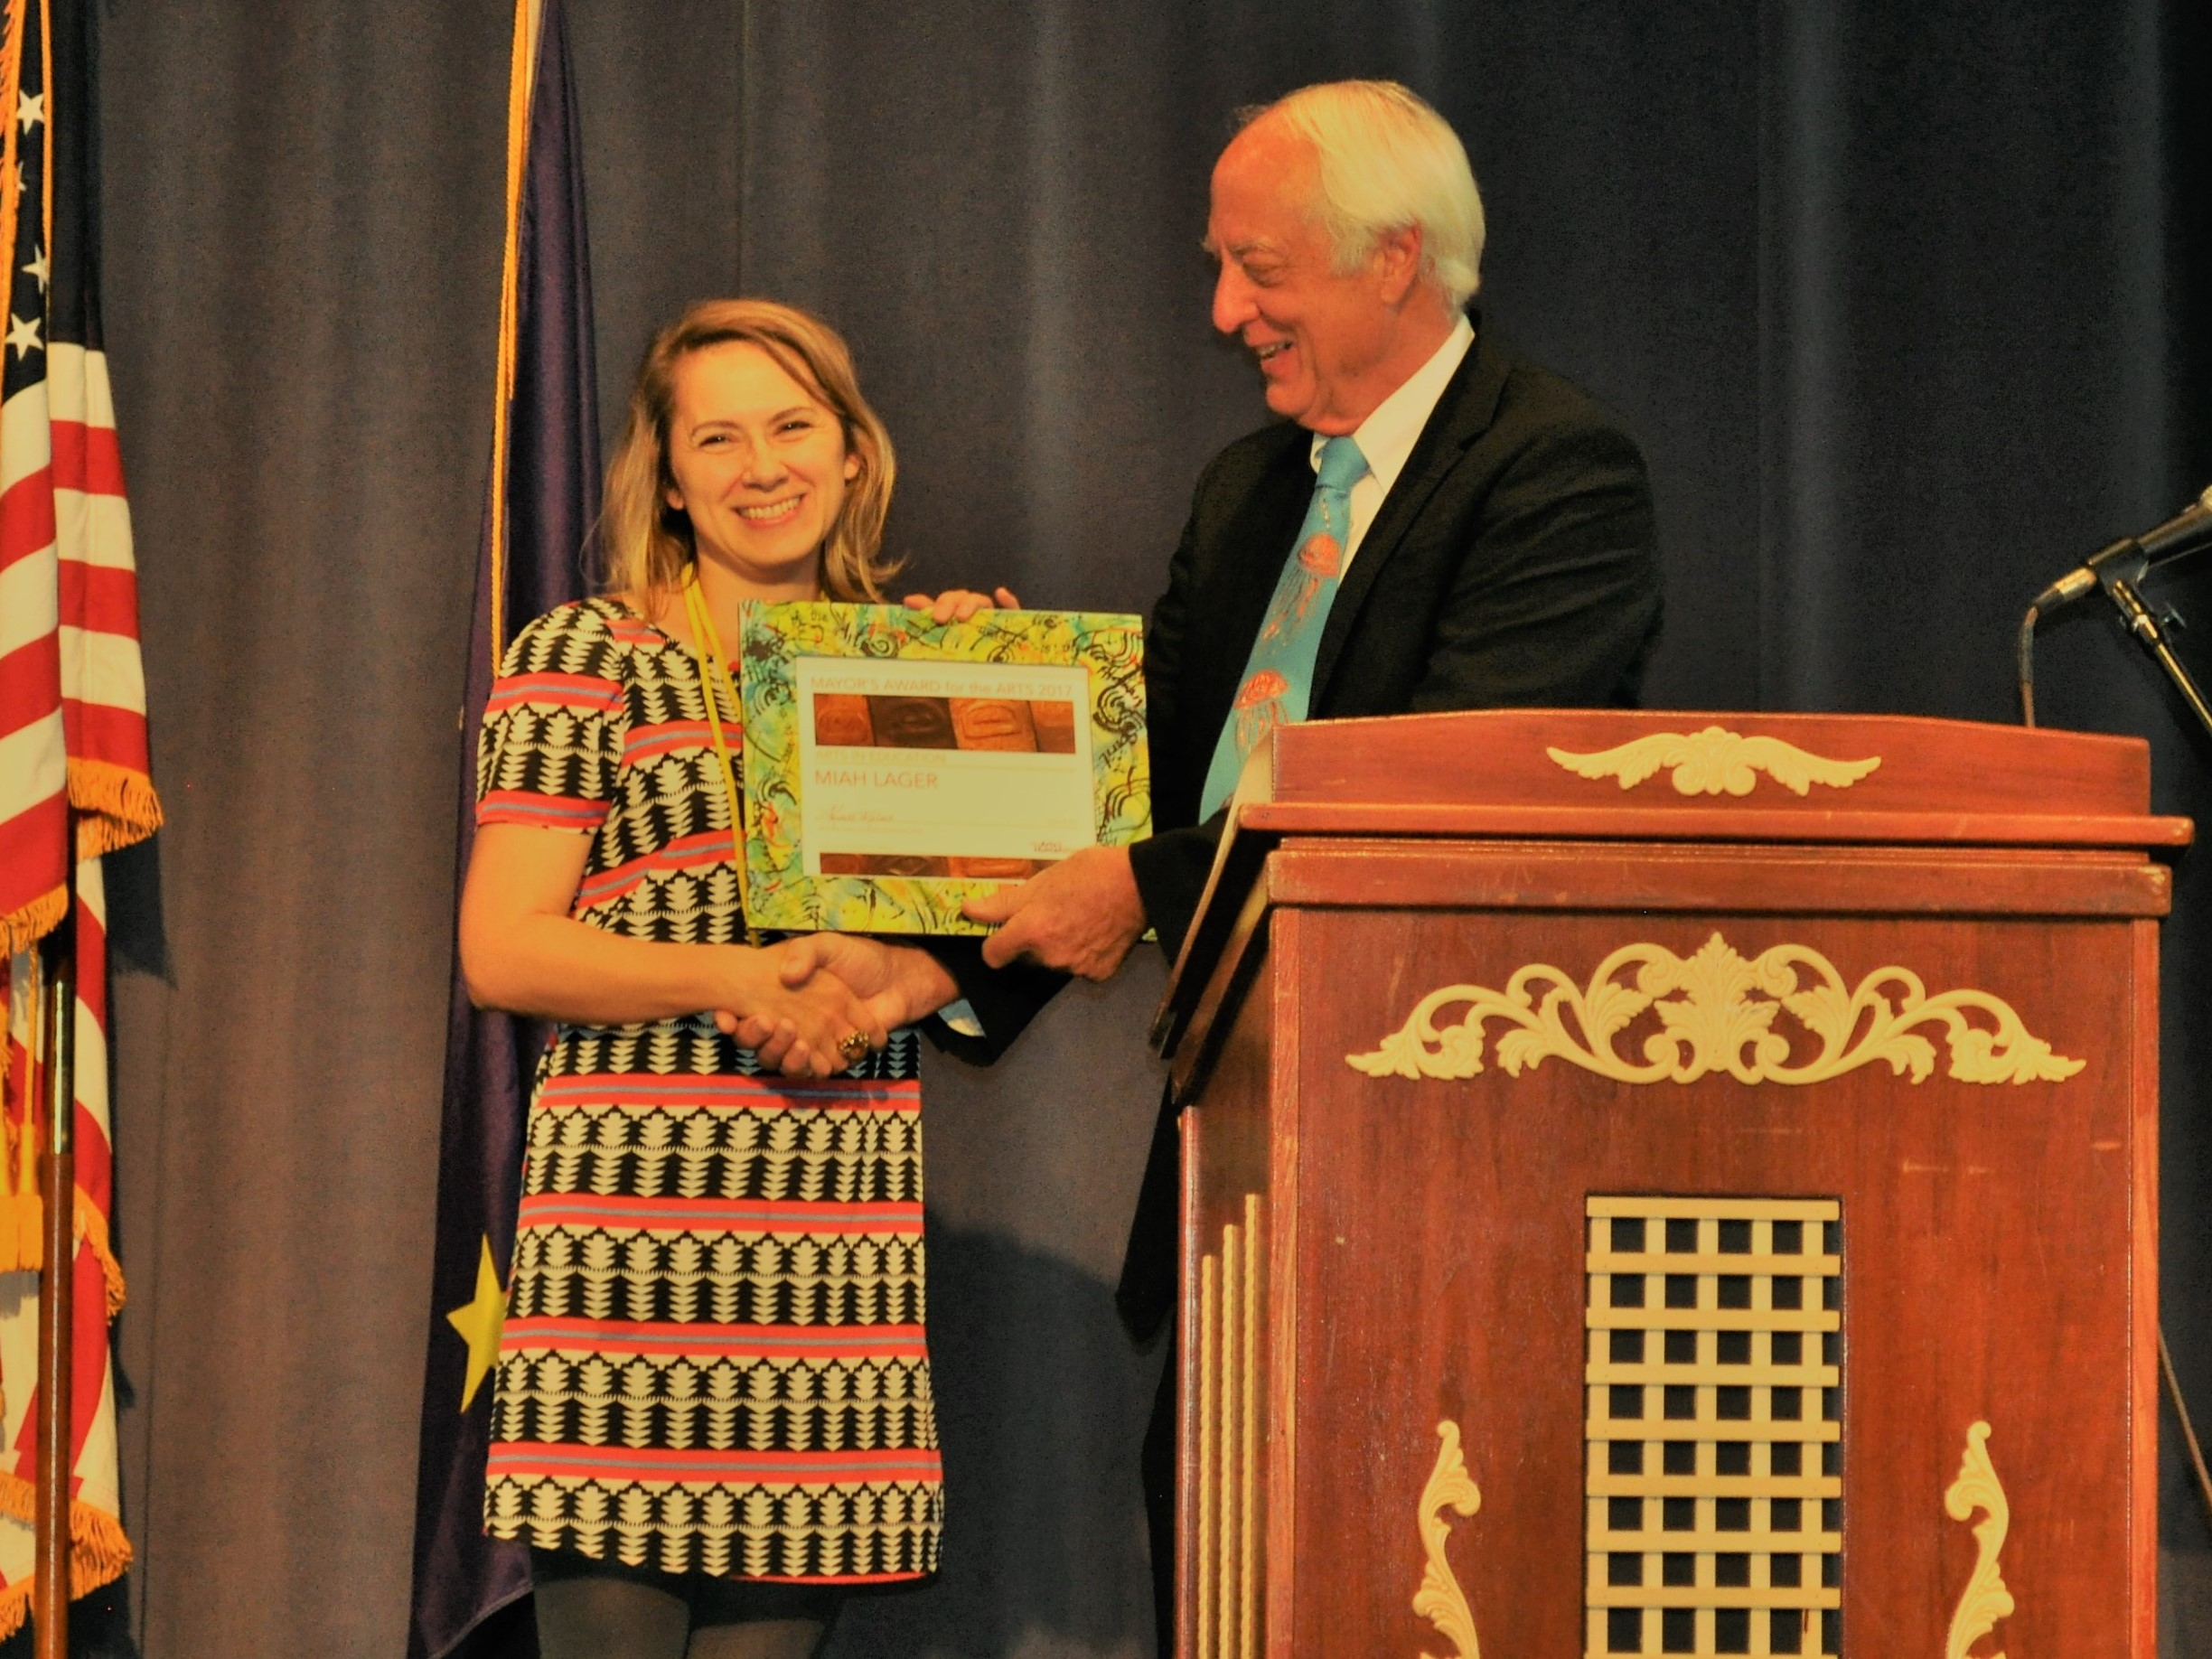 Miah Lager, Mayor's Award for the Arts 2017